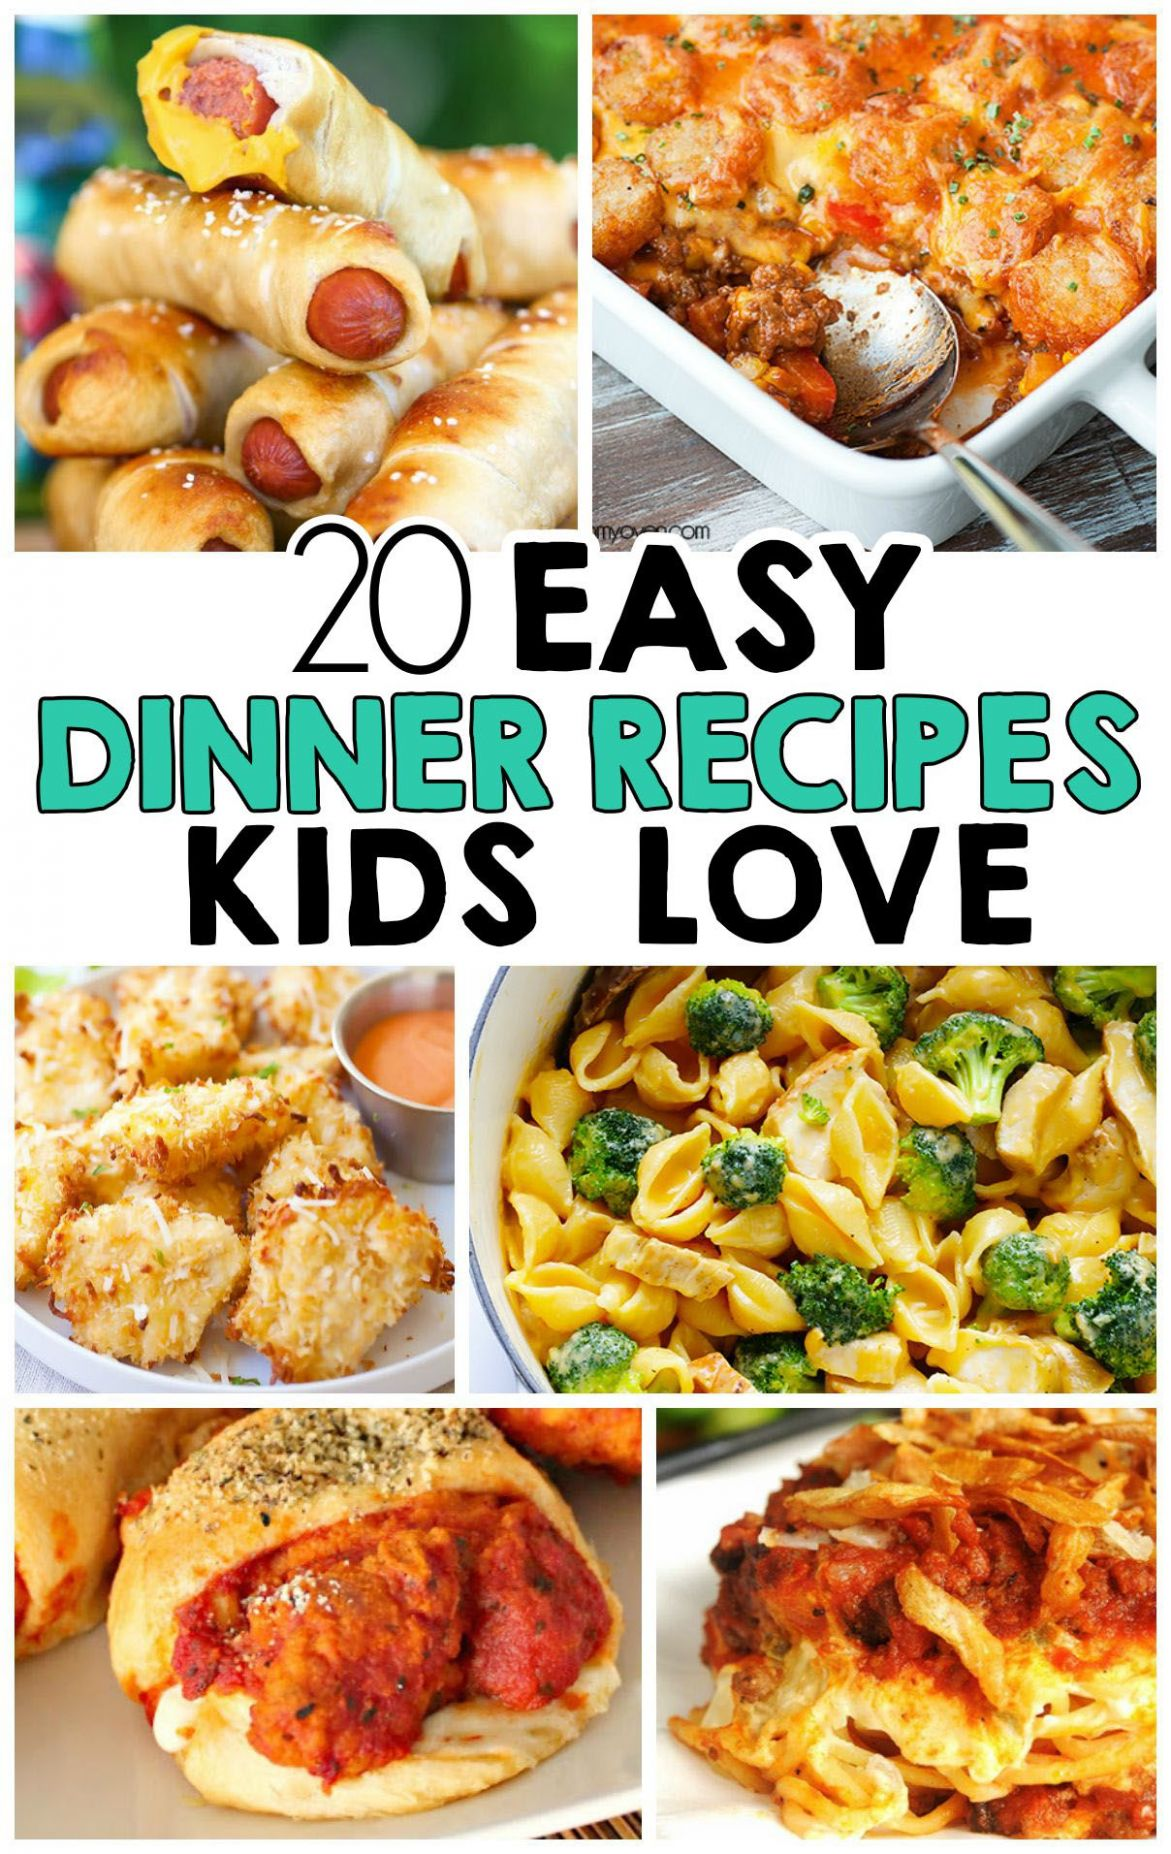 12 Easy Dinner Recipes That Kids Love | Meals kids love, Easy ...